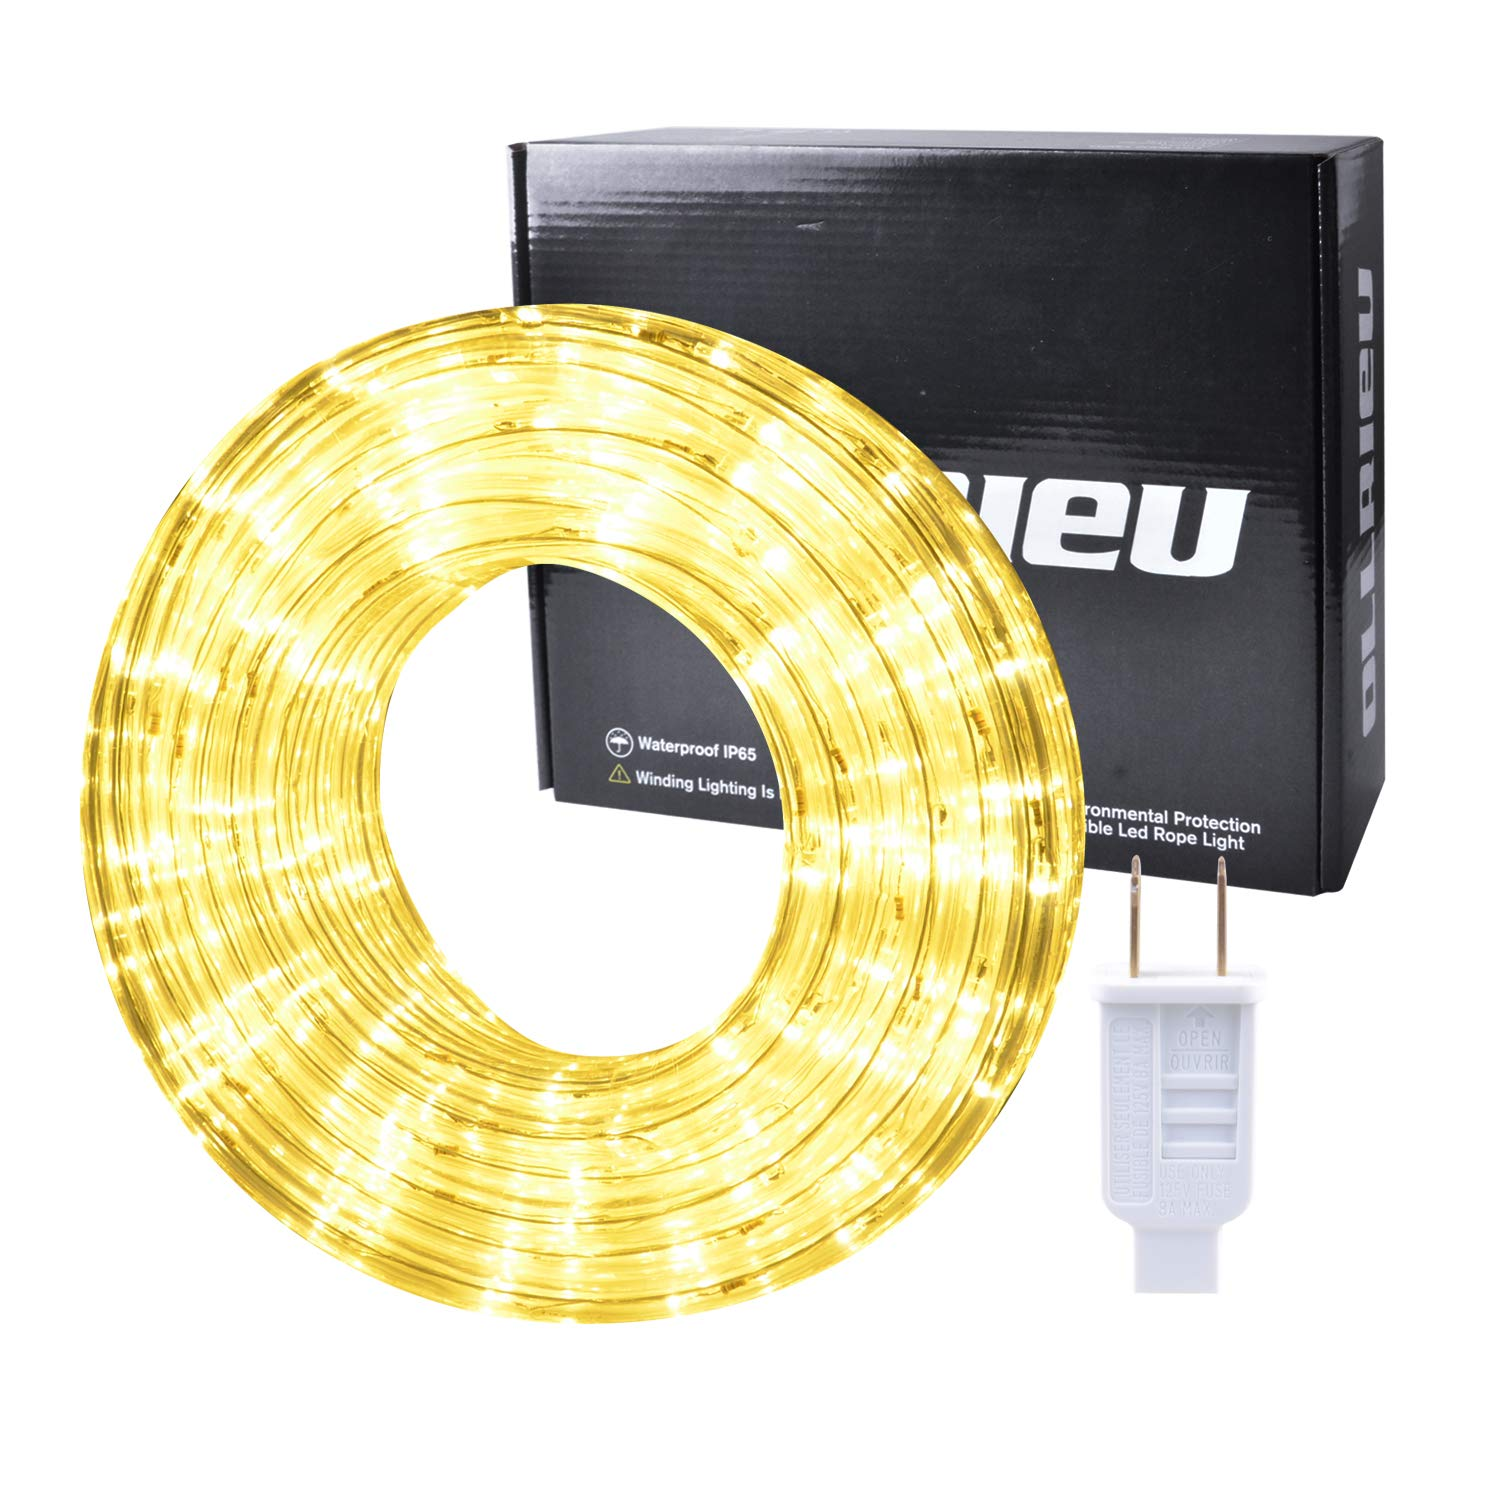 ollrieu Rope Lights Warm Outdoor 50ft Waterproof LED Rope Lighting Kit Flexible Connectable 3000K 110V UL Listed Power Plug-in Indoor Strip Light